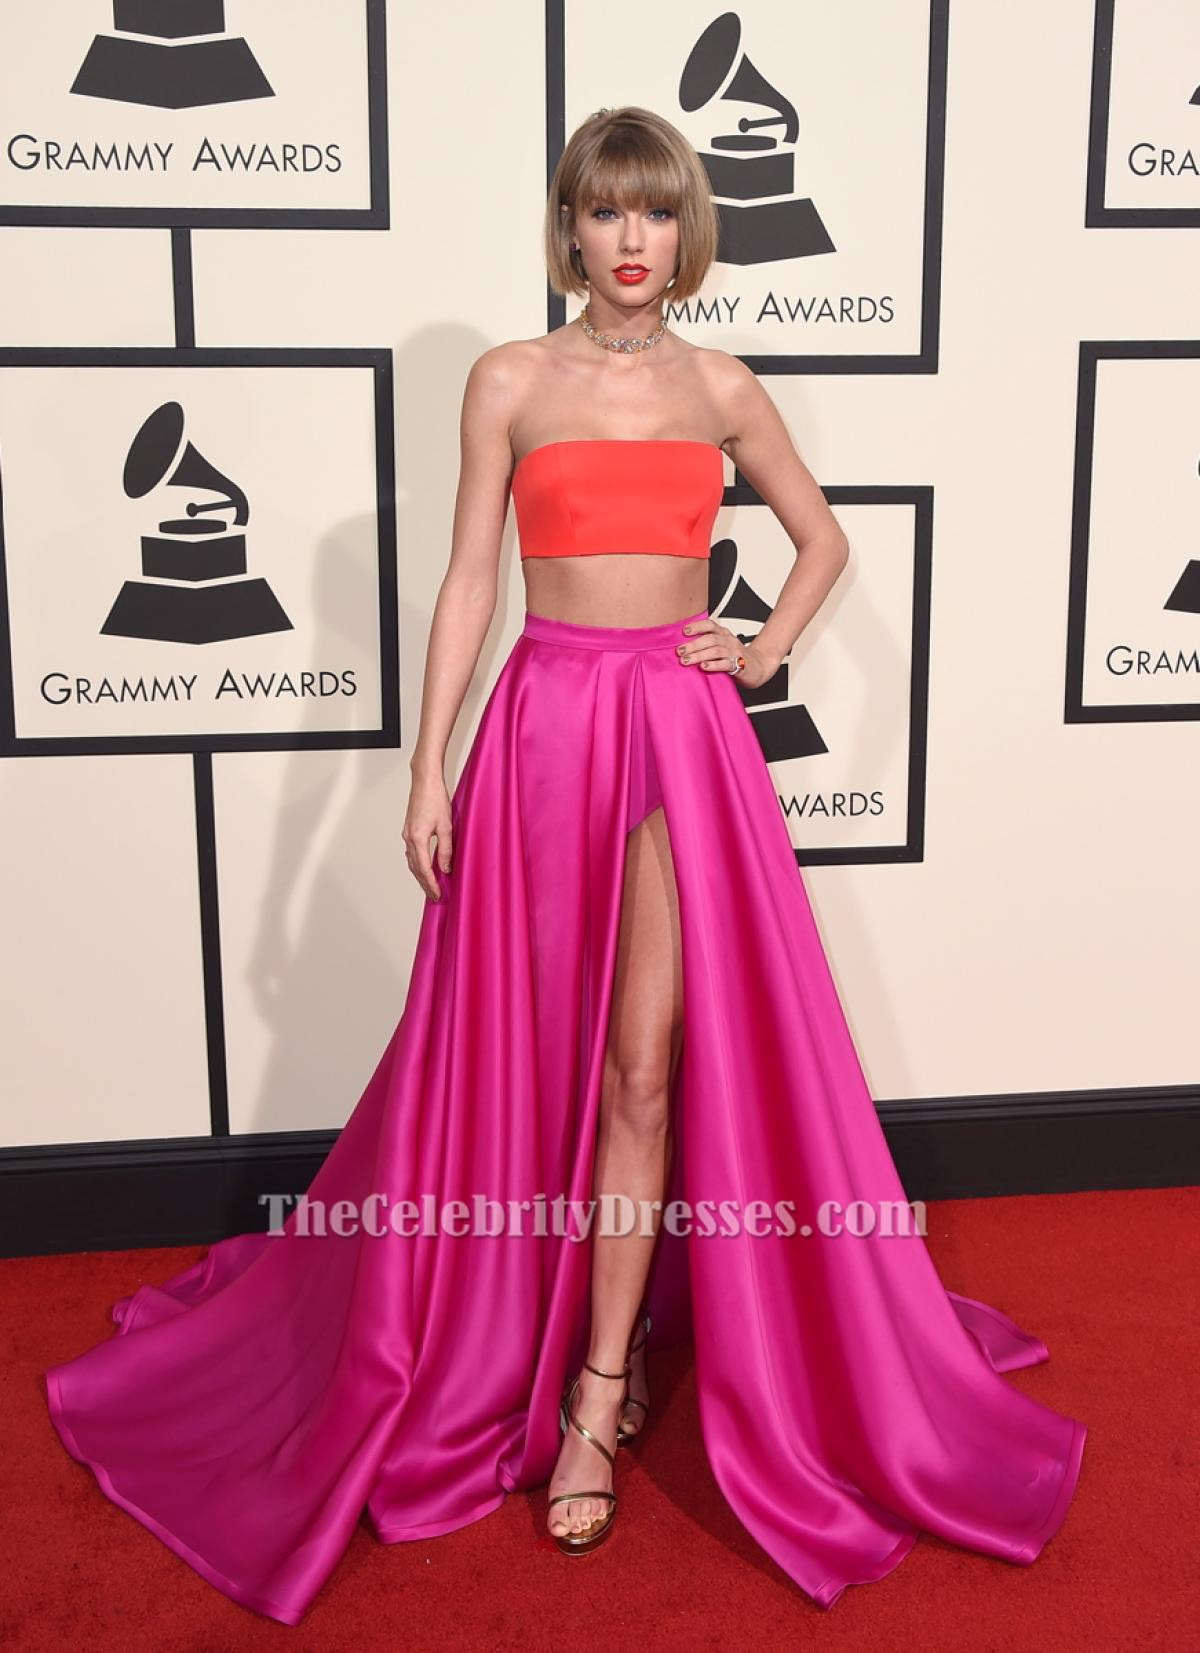 Taylor Swift Grammys 2016 Two Piece Dress Red Carpet Gown ...